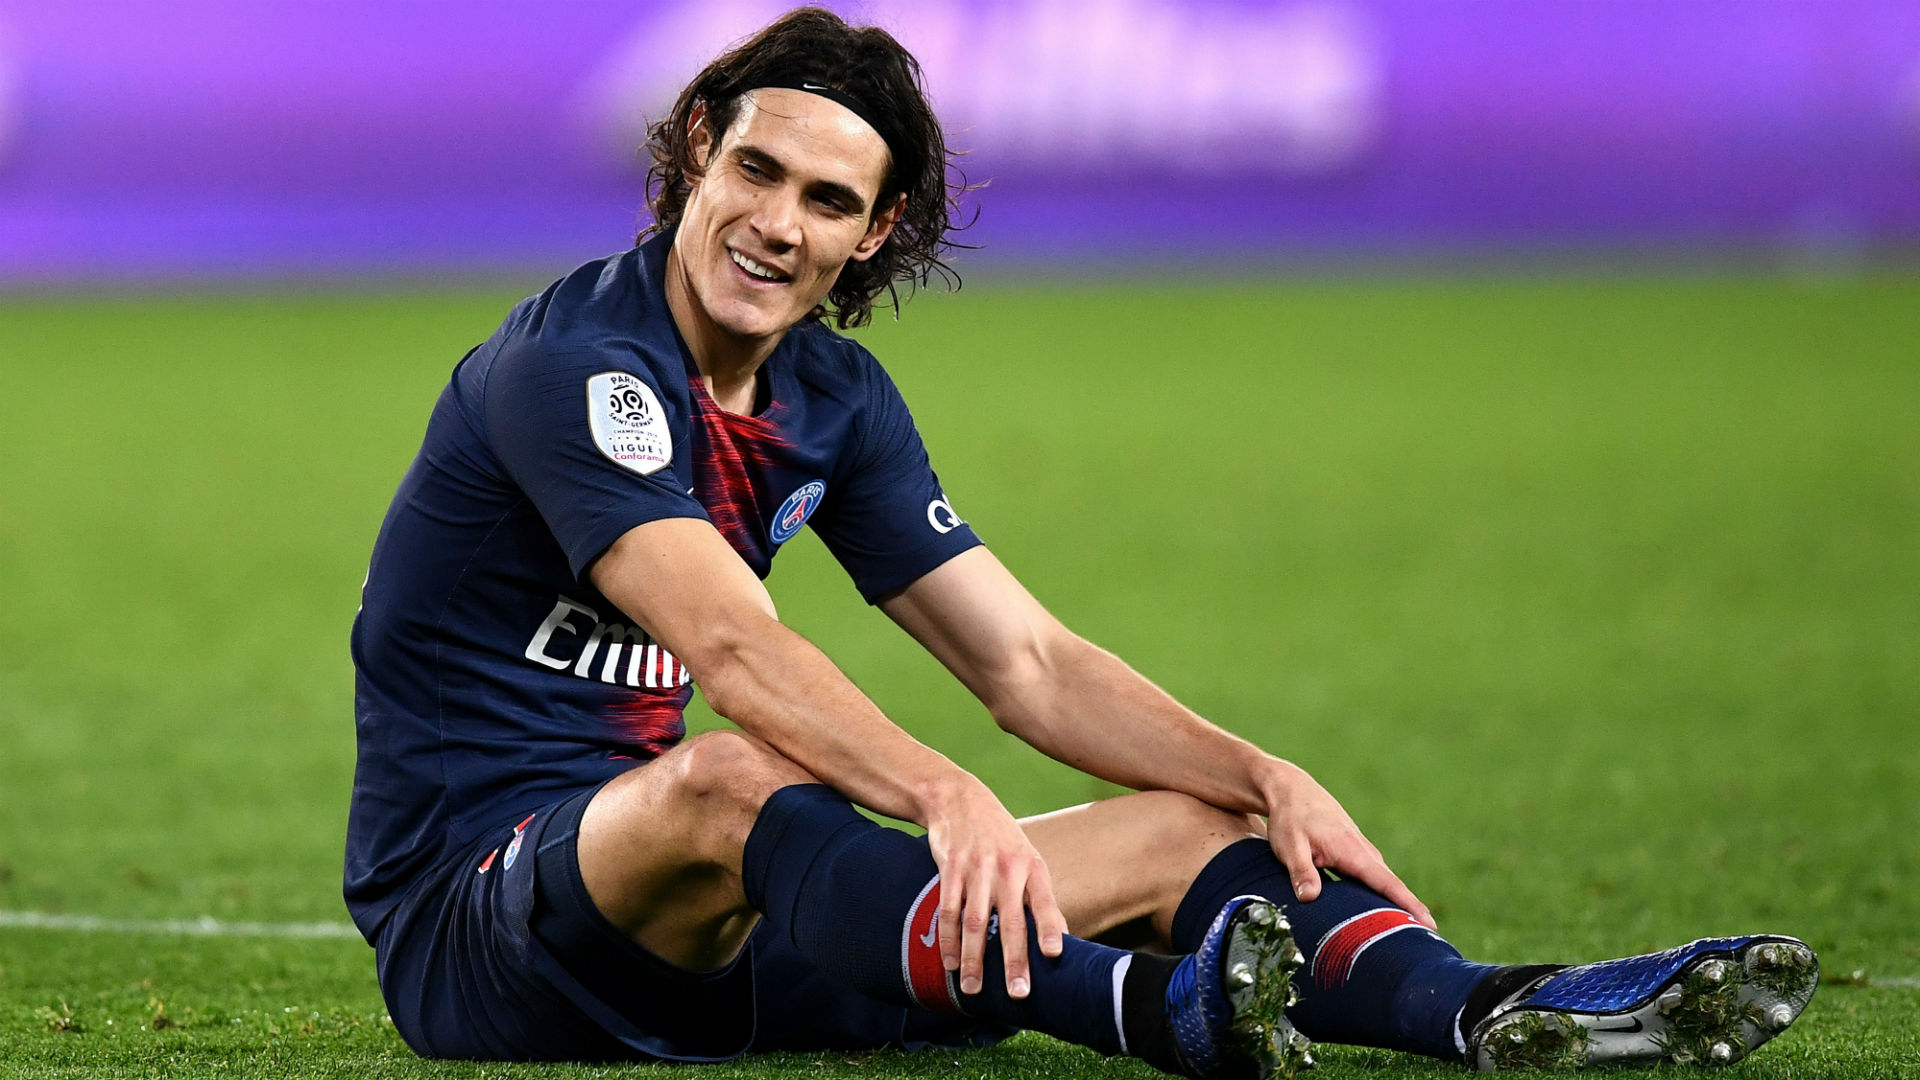 PSG 1-0 Bordeaux: Edinson Cavani injured days before Manchester United game